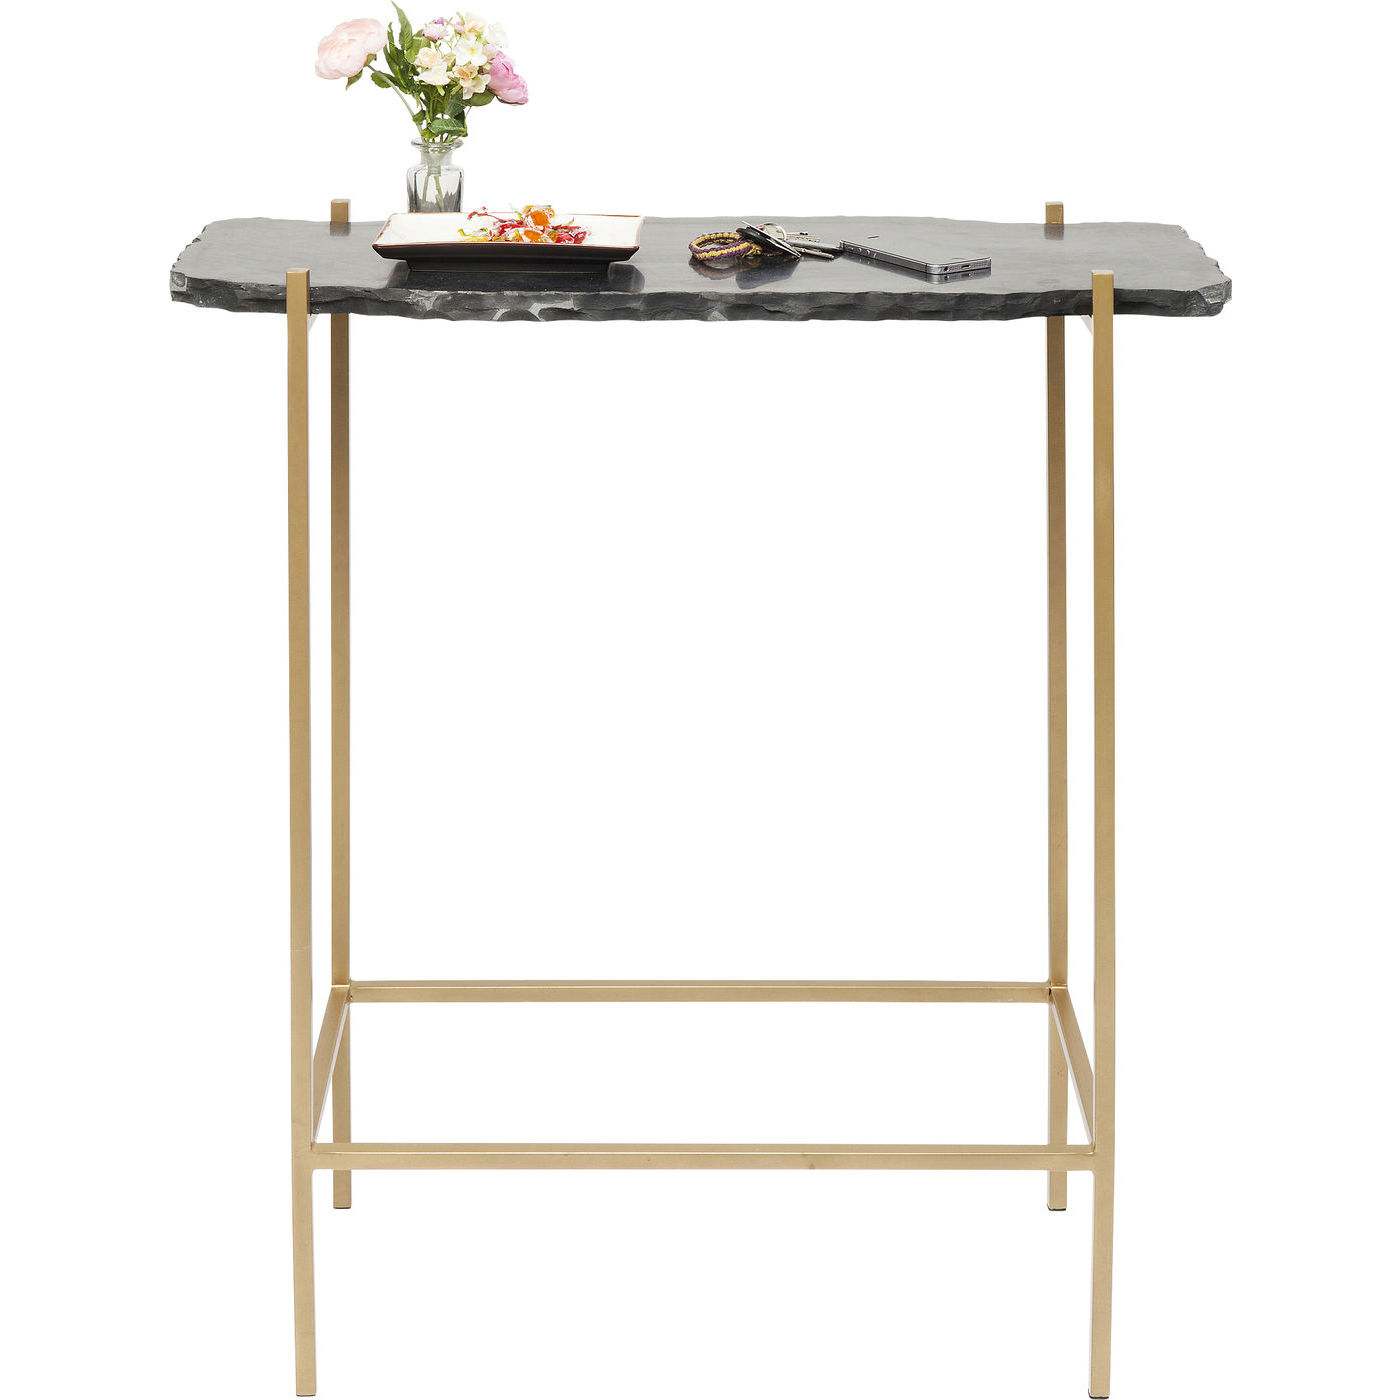 KARE DESIGN Piedra Black barbord - sort granit/guld stl